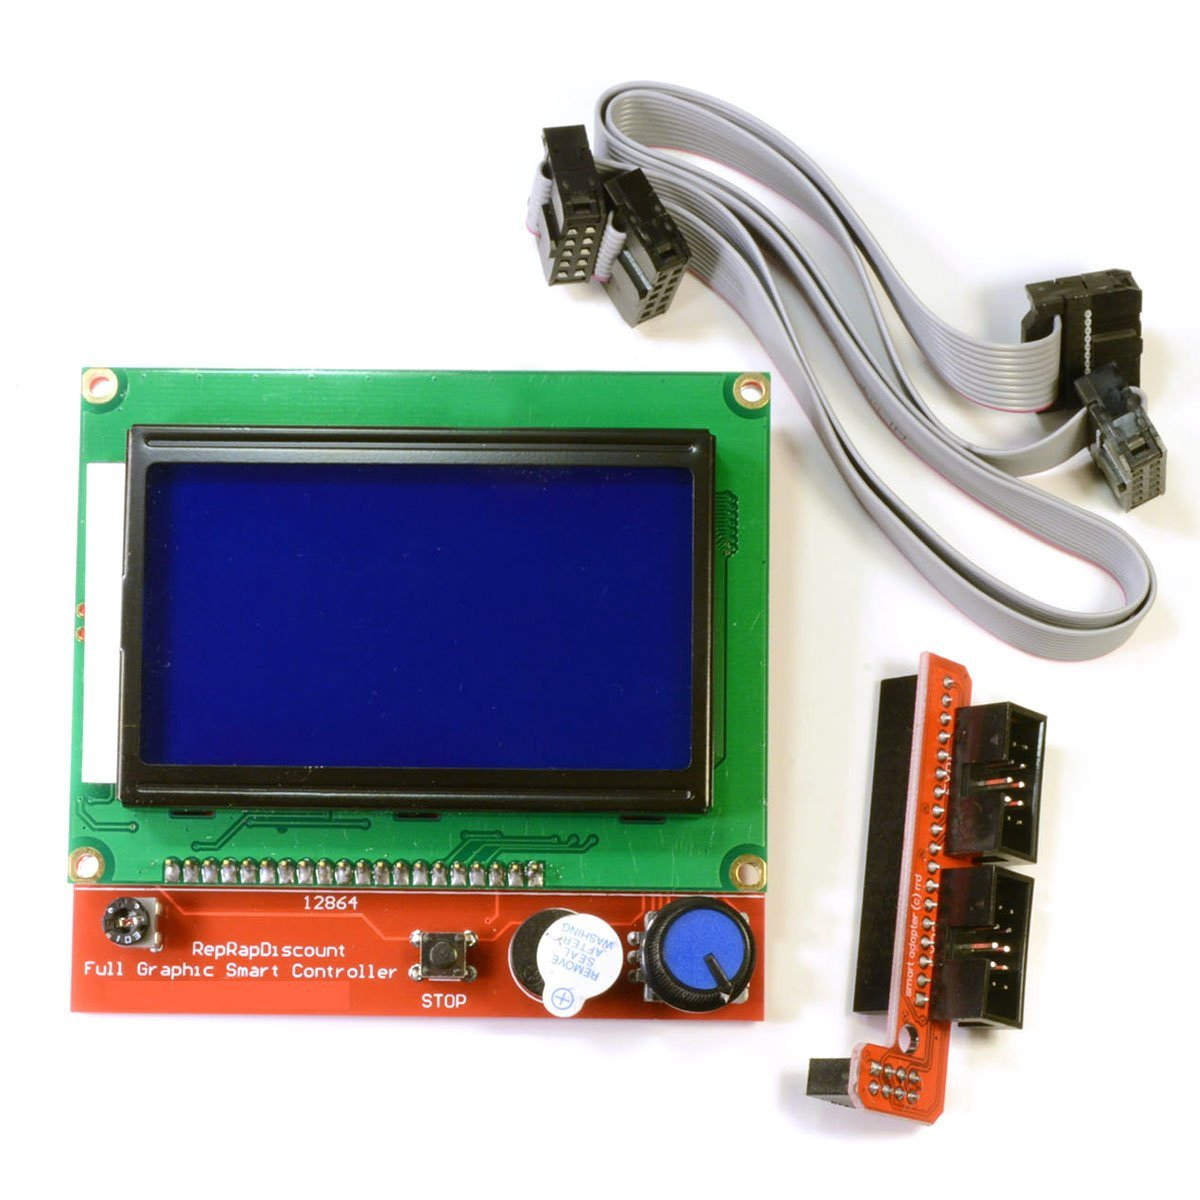 Full Graphic Smart Controller LCD Display for RAMPS 1.4 RepRap 3D Printer Electronics (12864 display with SD card reader)